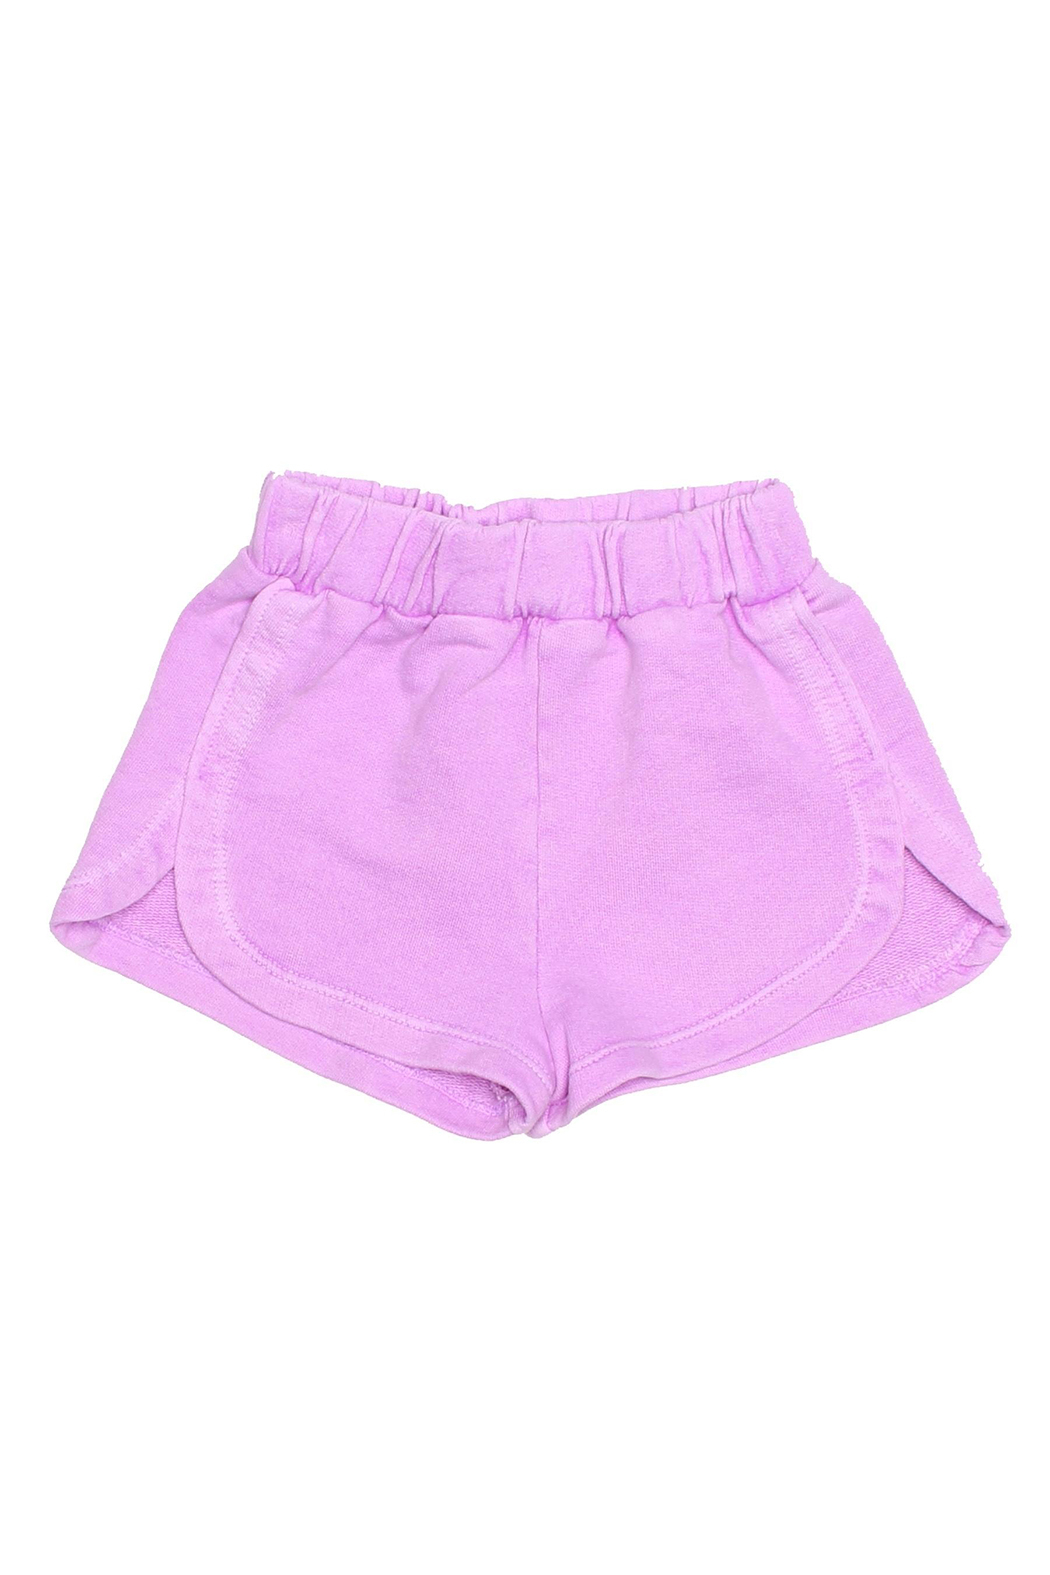 JOAH LOVE Pink Surf Shorts - Main Image